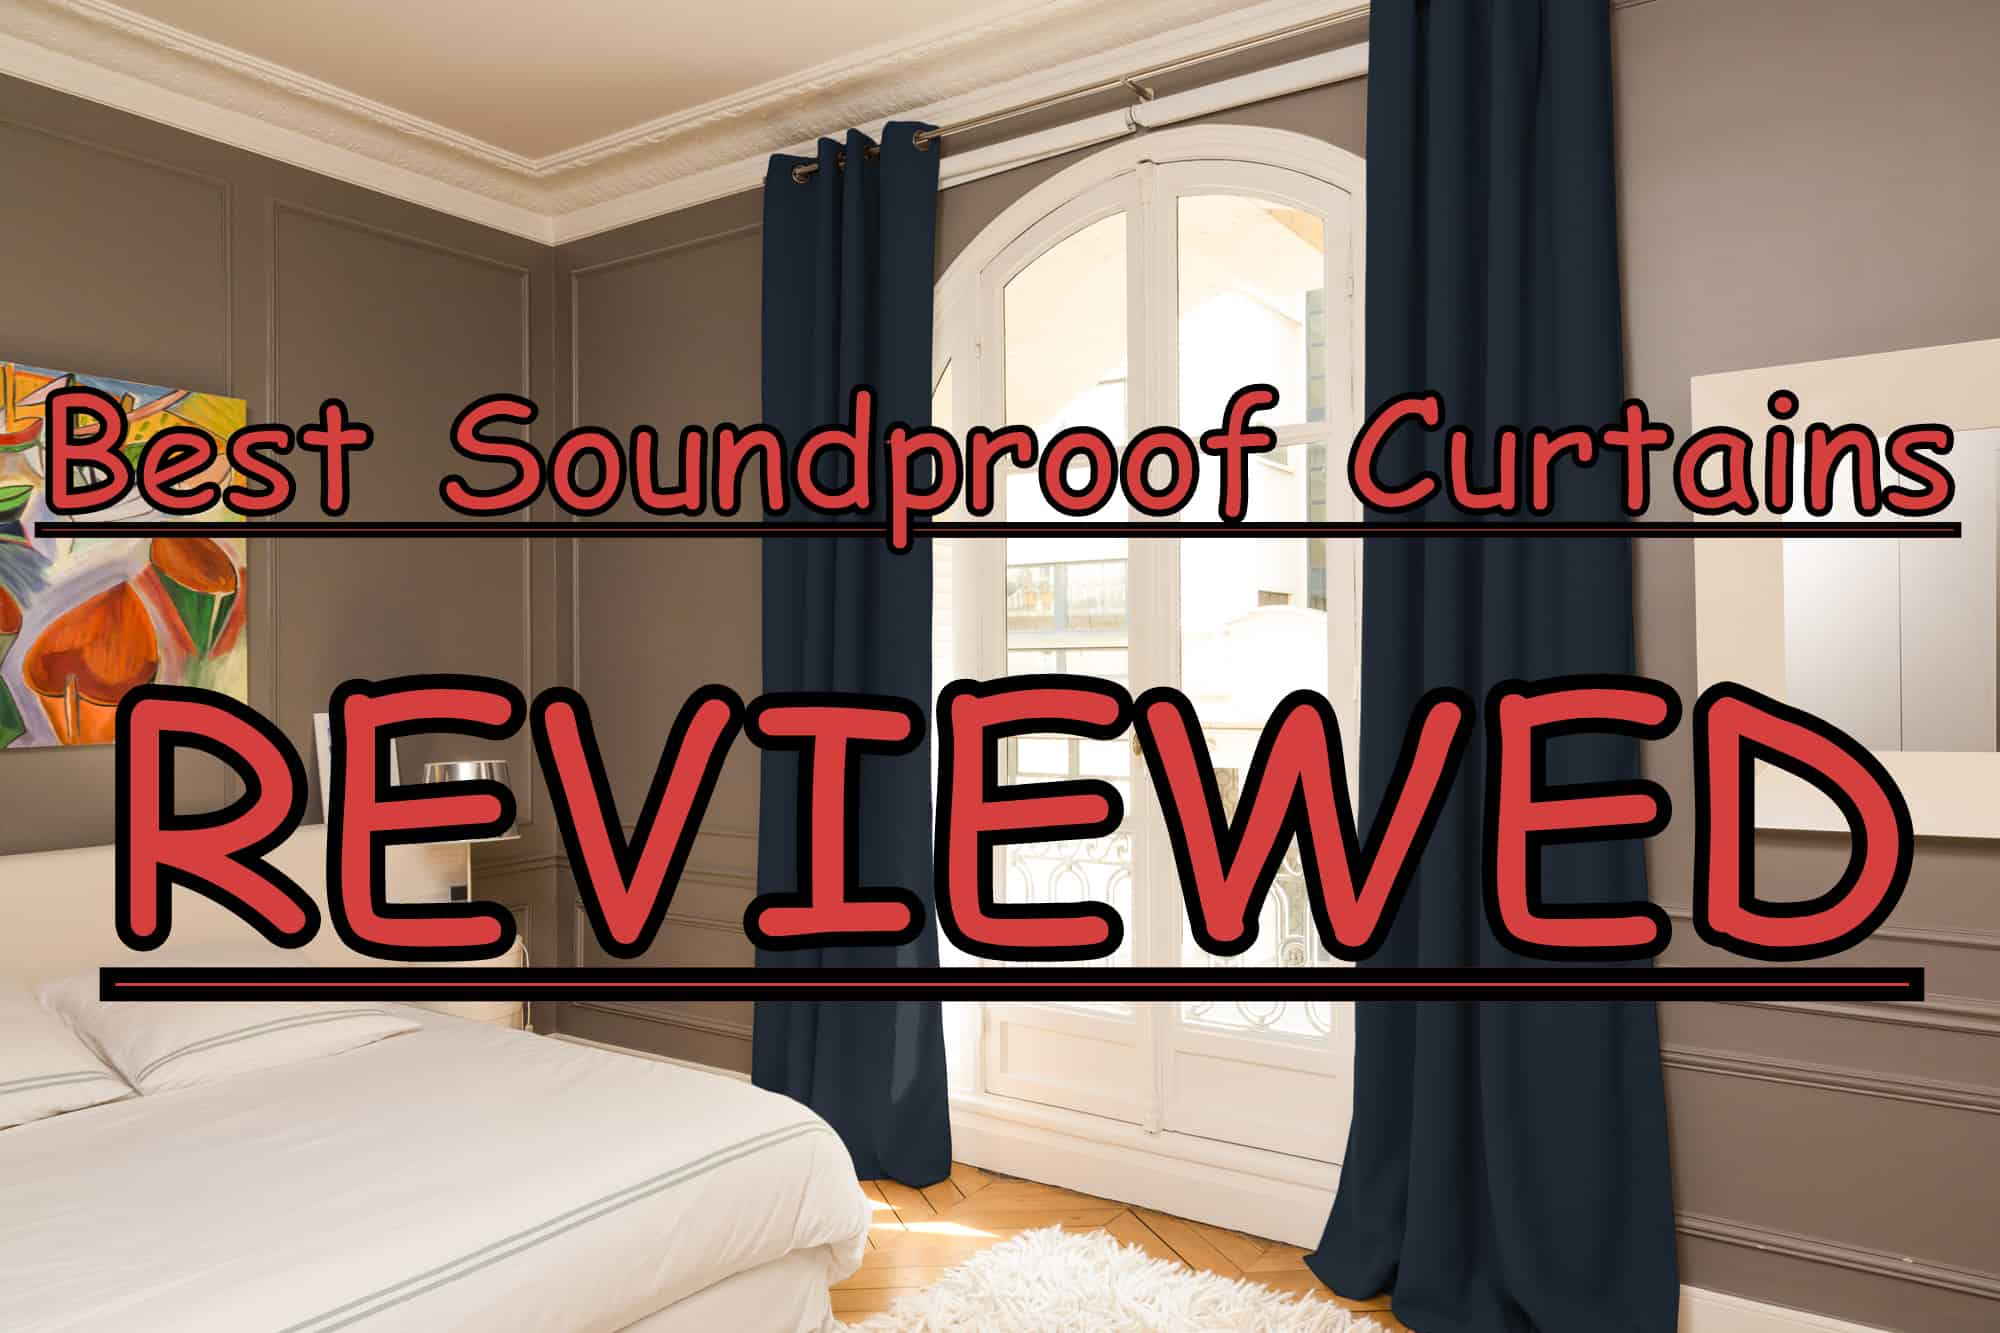 product image - Best Soundproof Curtains